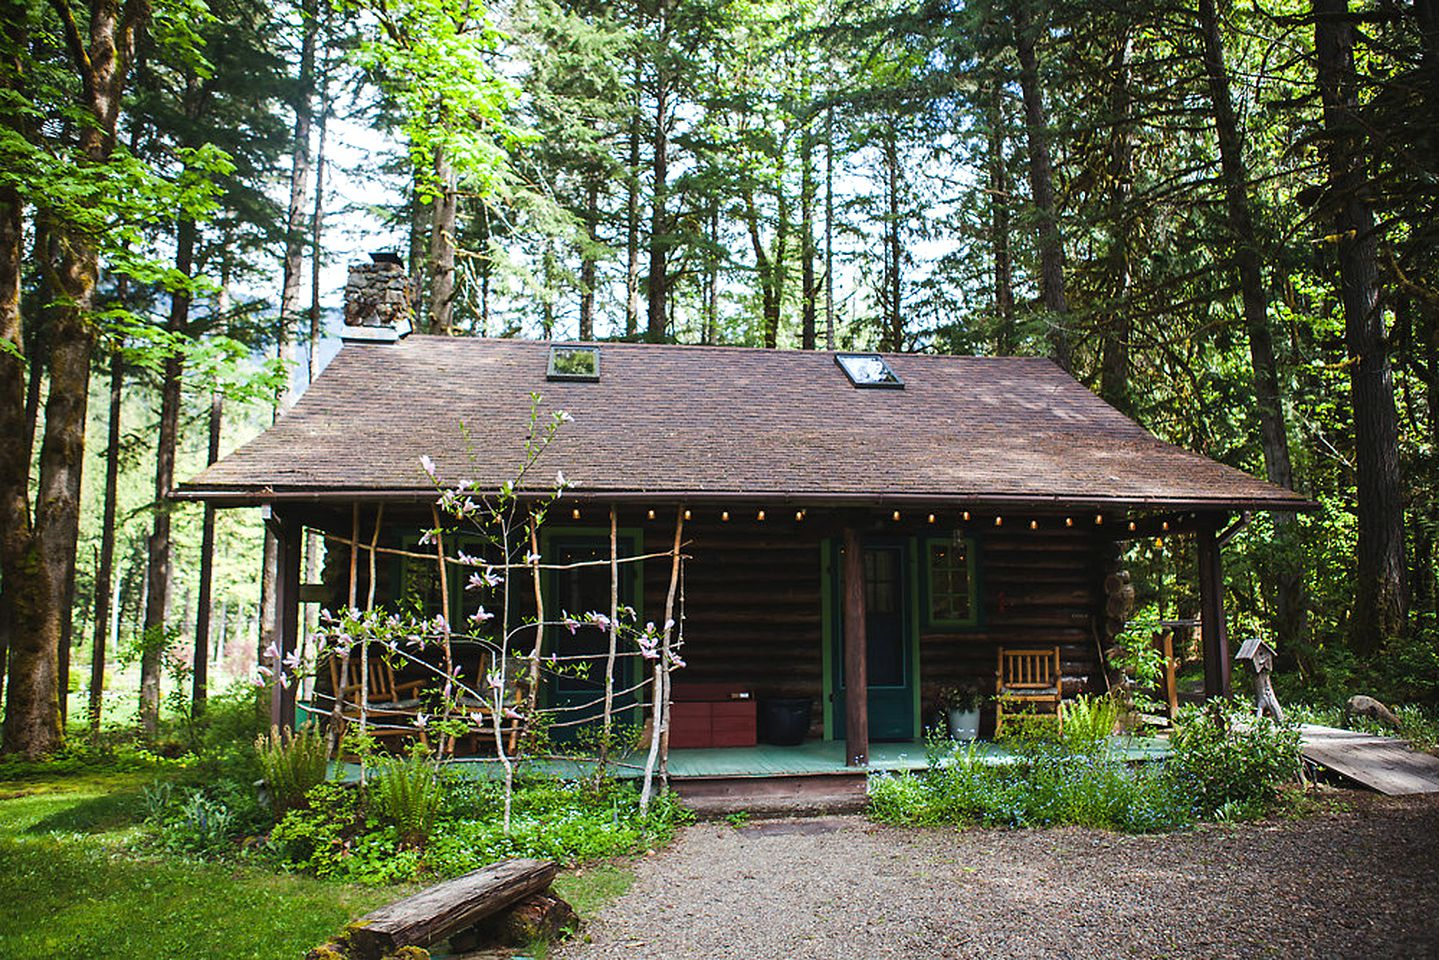 Log Cabins (McKenzie Bridge, Oregon, United States)